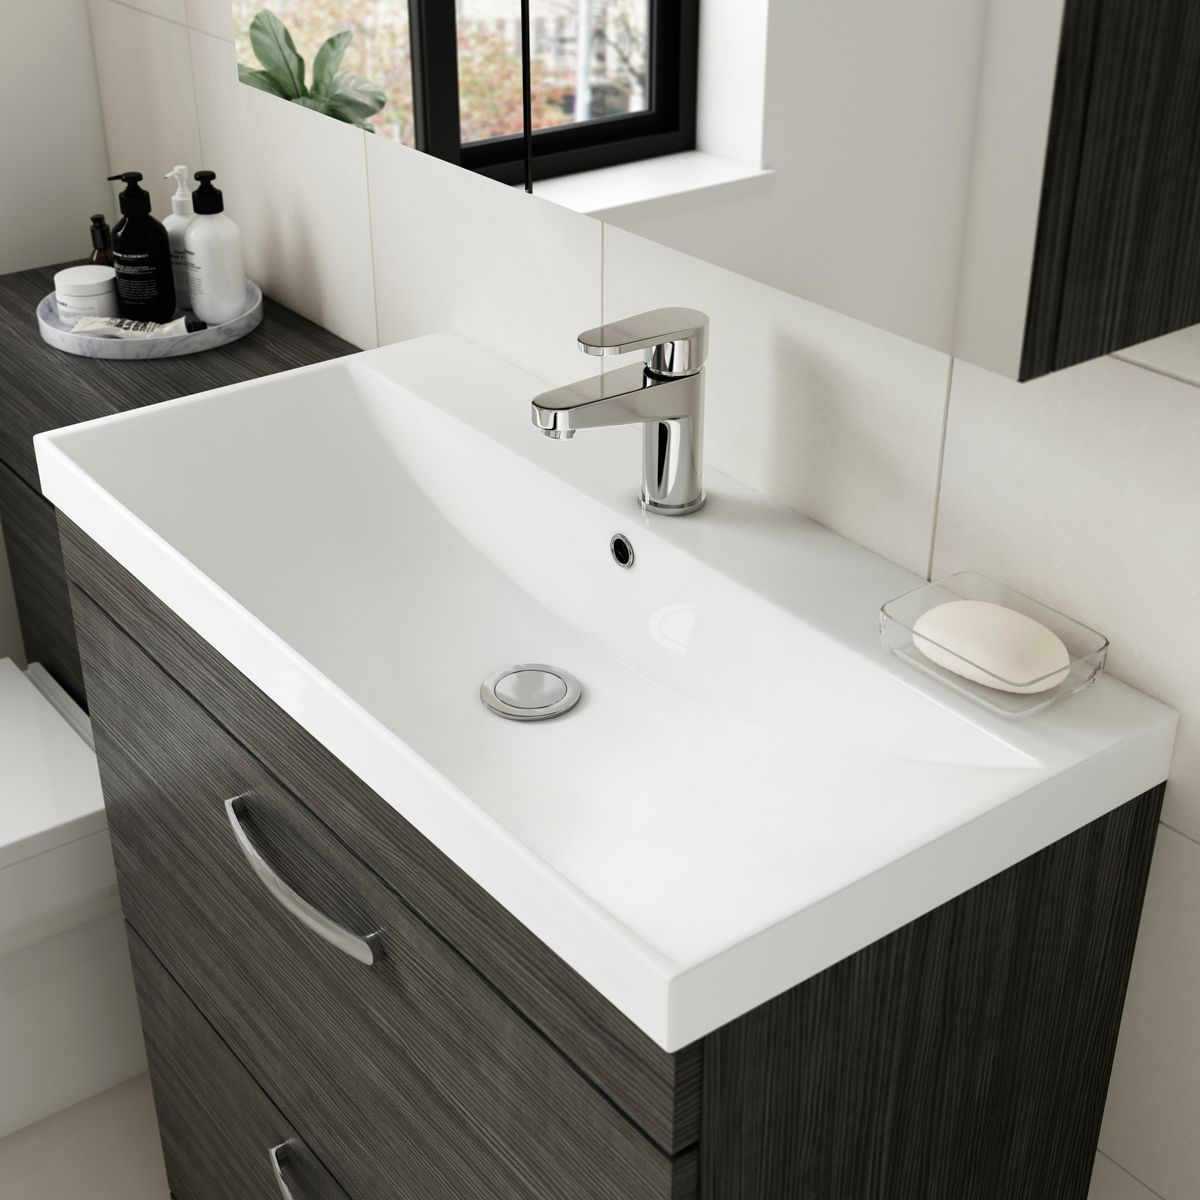 Nuie Athena Basin Option 3 -  Mid Edge Basin